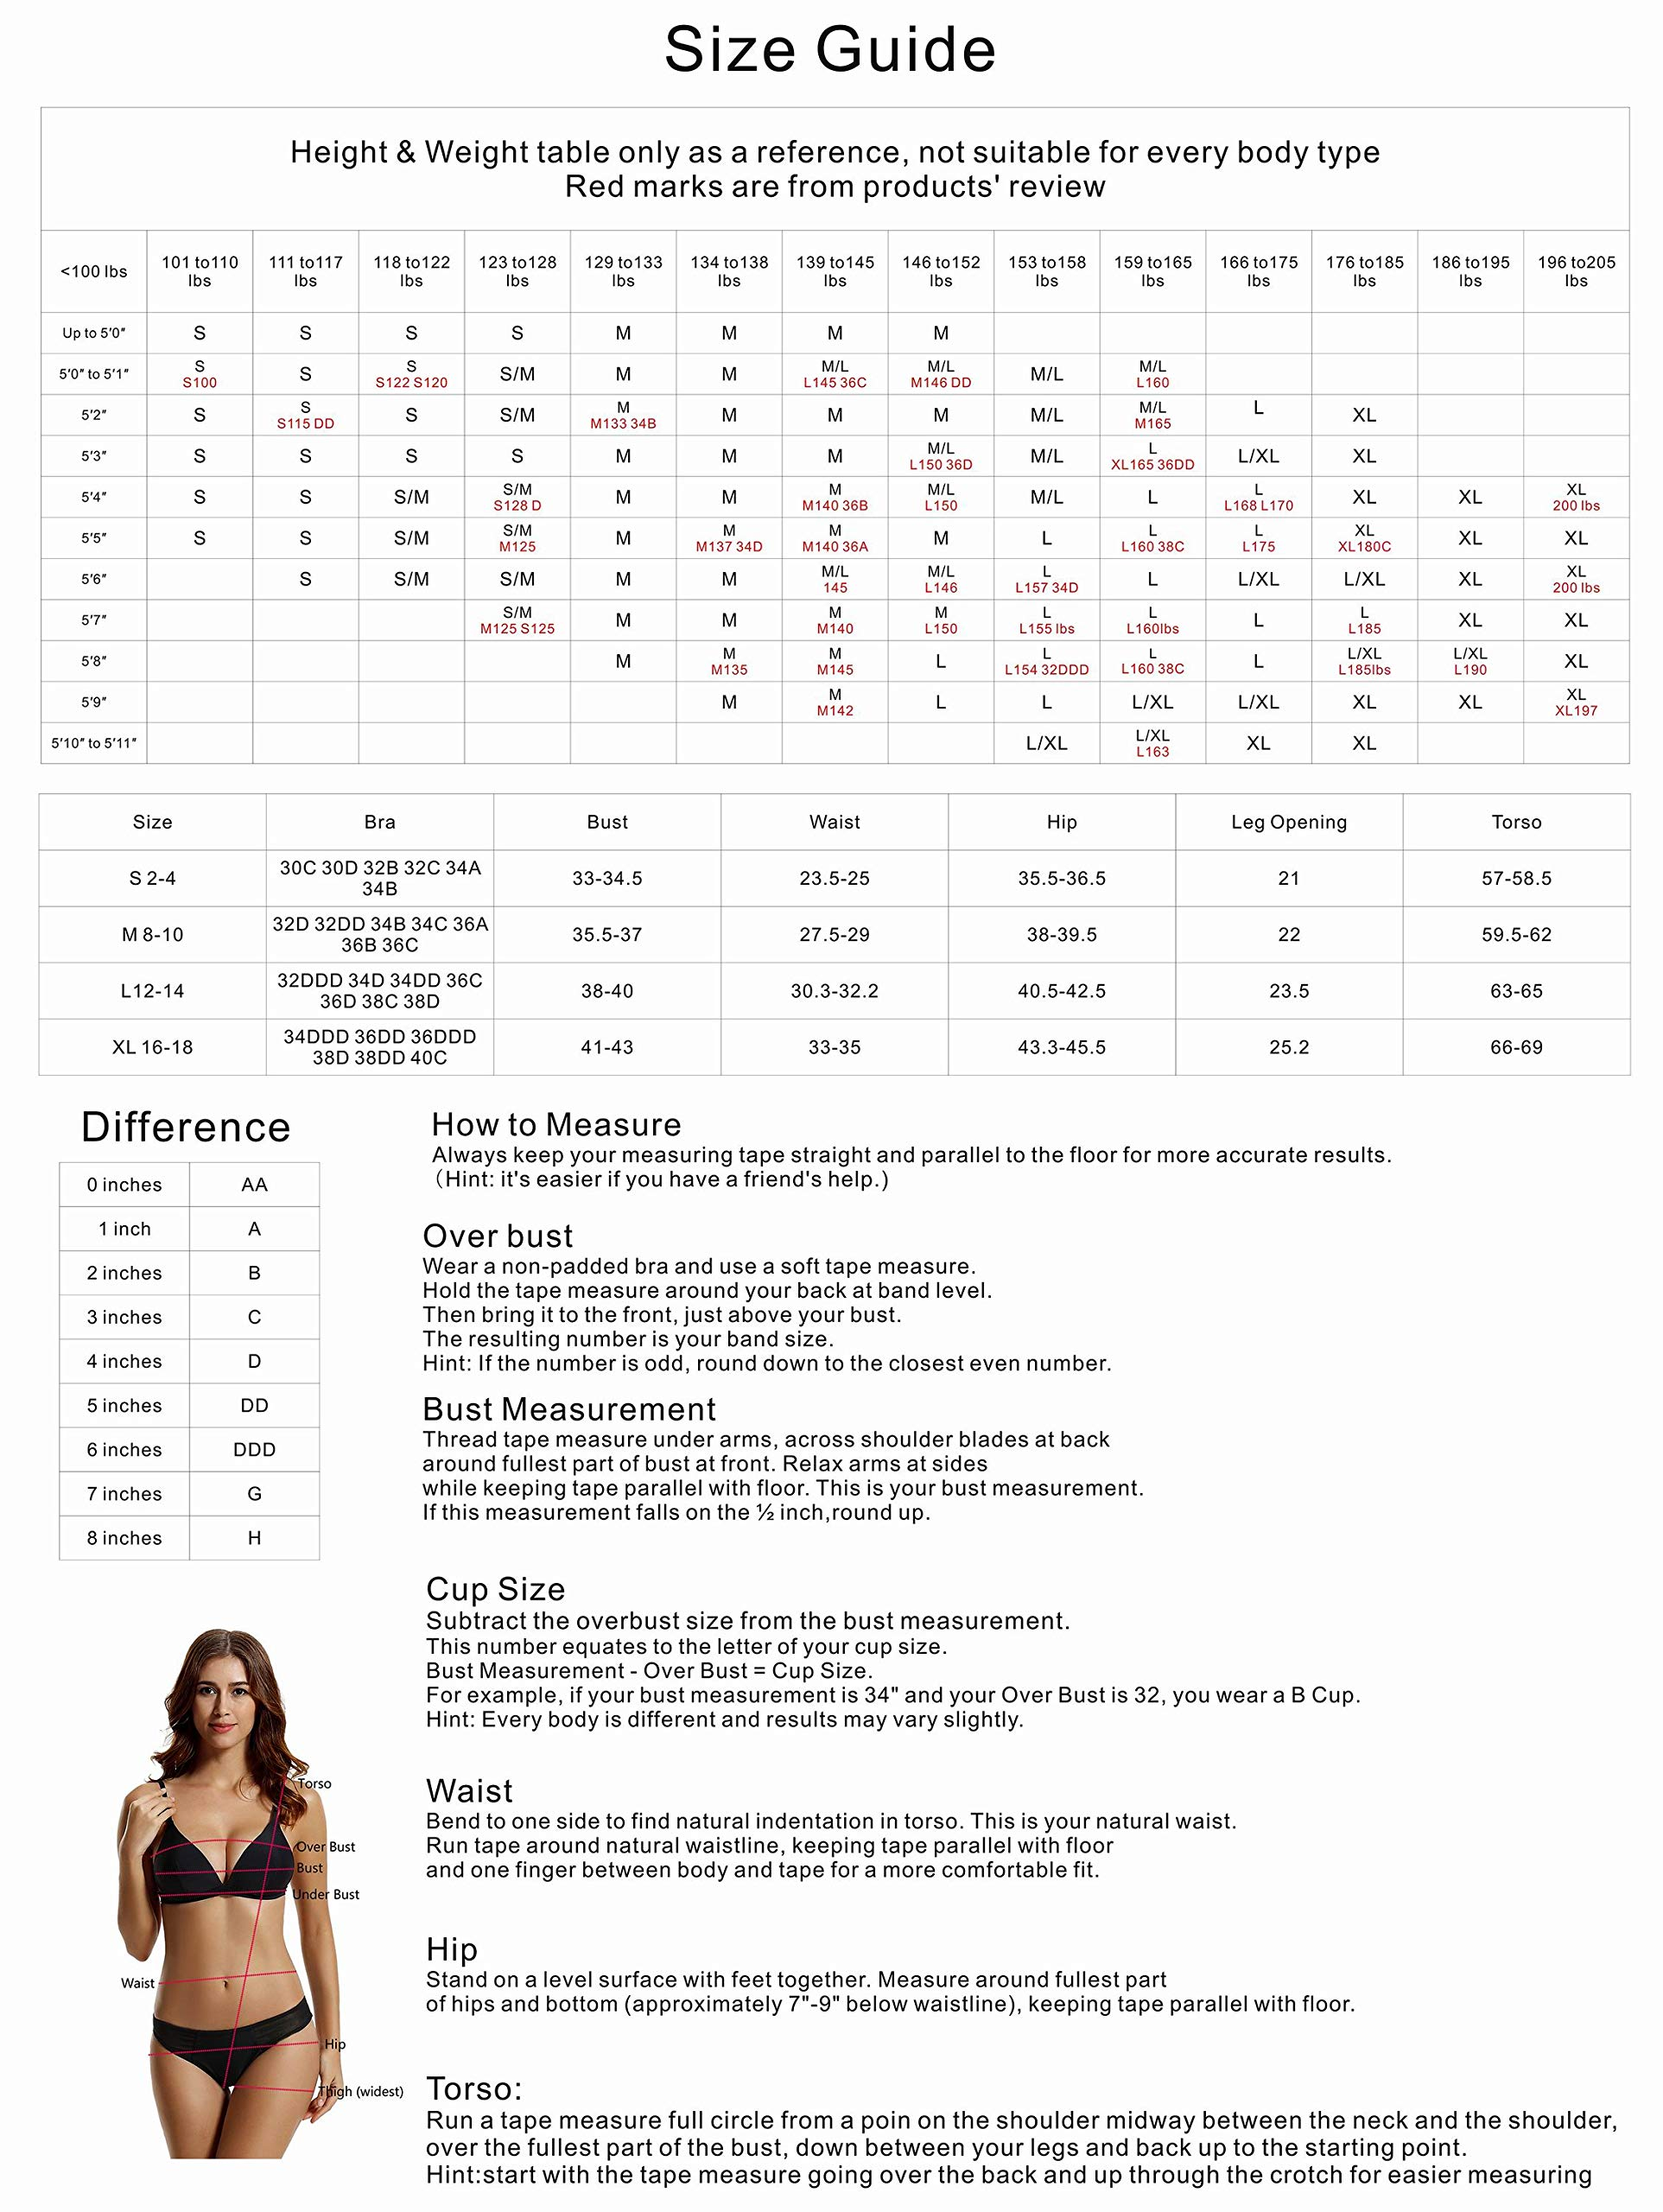 d29fb6a28af50 zeraca Women s Vintage Deep Plunge Backless High Waisted One Piece Swimsuit  Bathing Suit (M10